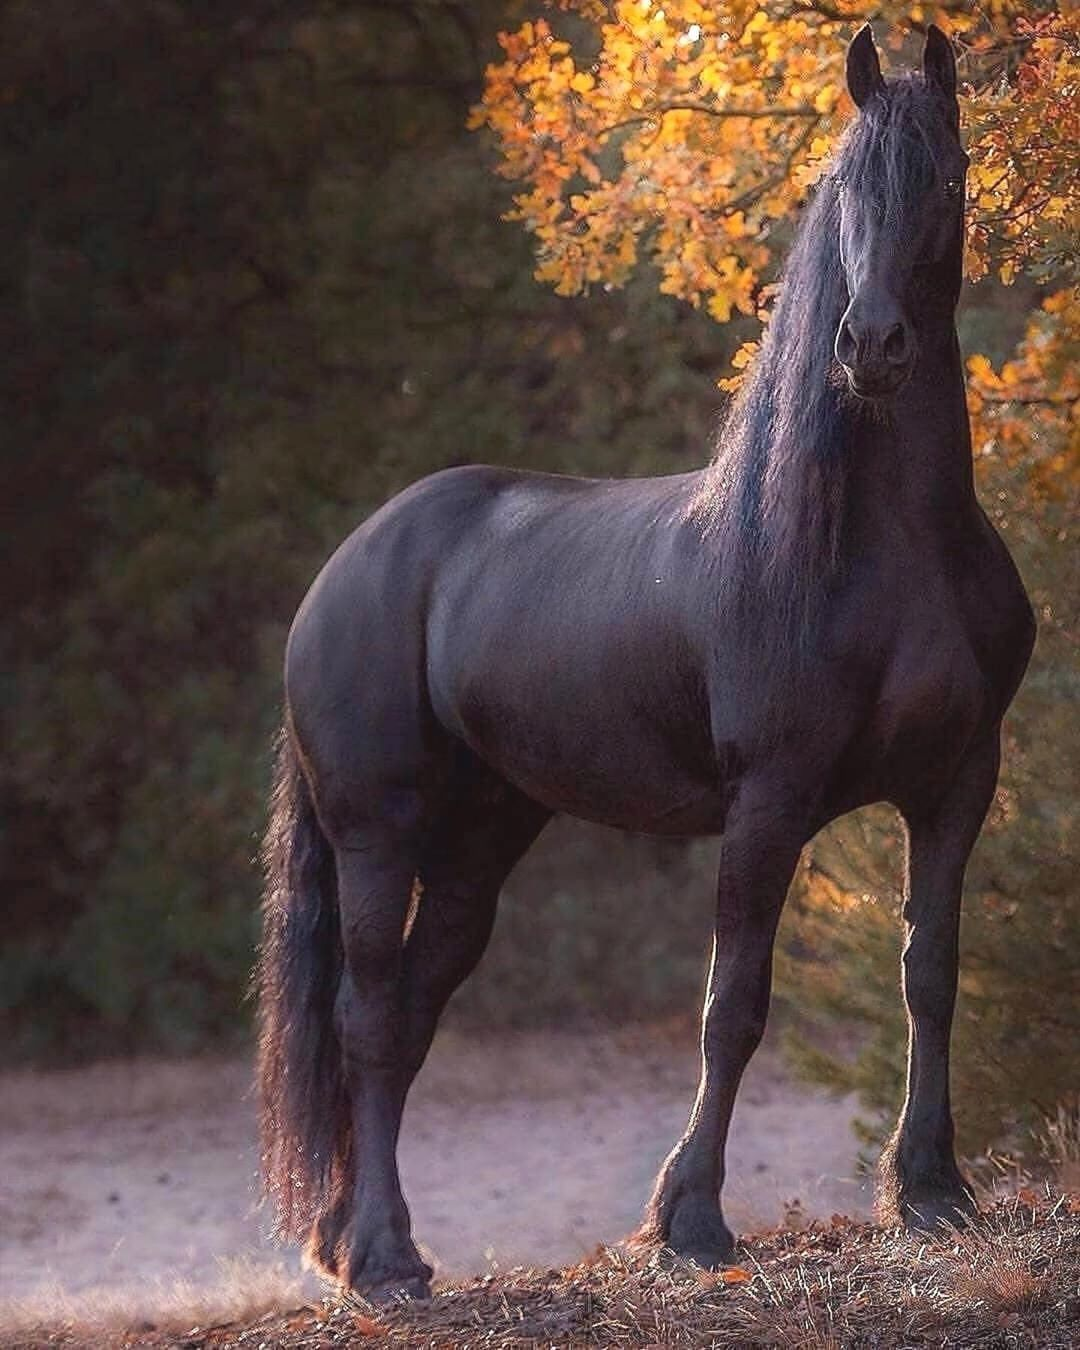 Animals On Instagram Black Beauty The Wild Mustang Free From The Constraints Of A Saddle And Spur Beautiful Horses Stallion Horses Big Horses